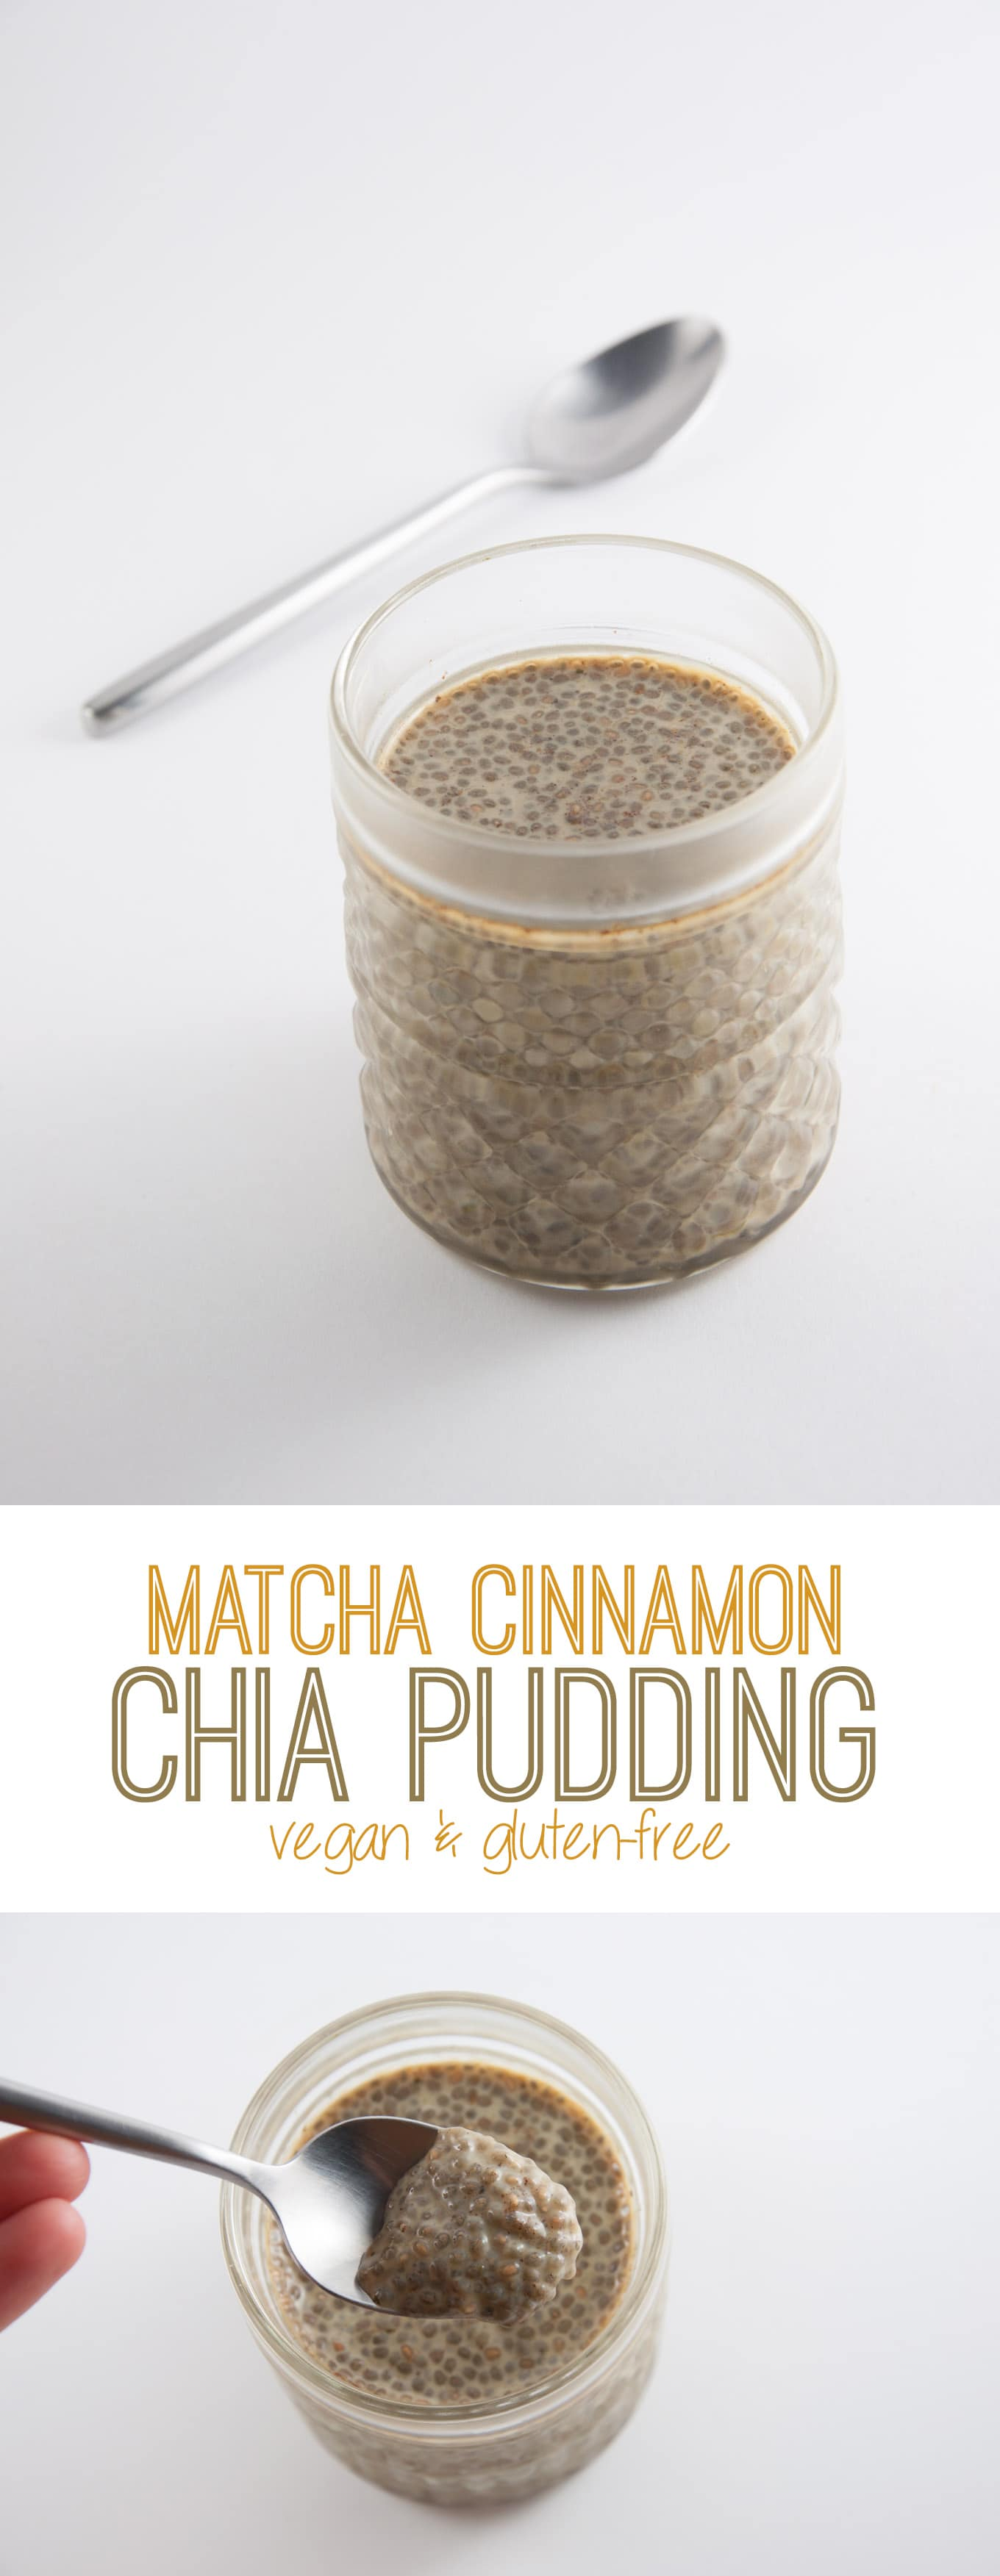 Matcha Cinnamon Chia Pudding | ElephantasticVegan.com